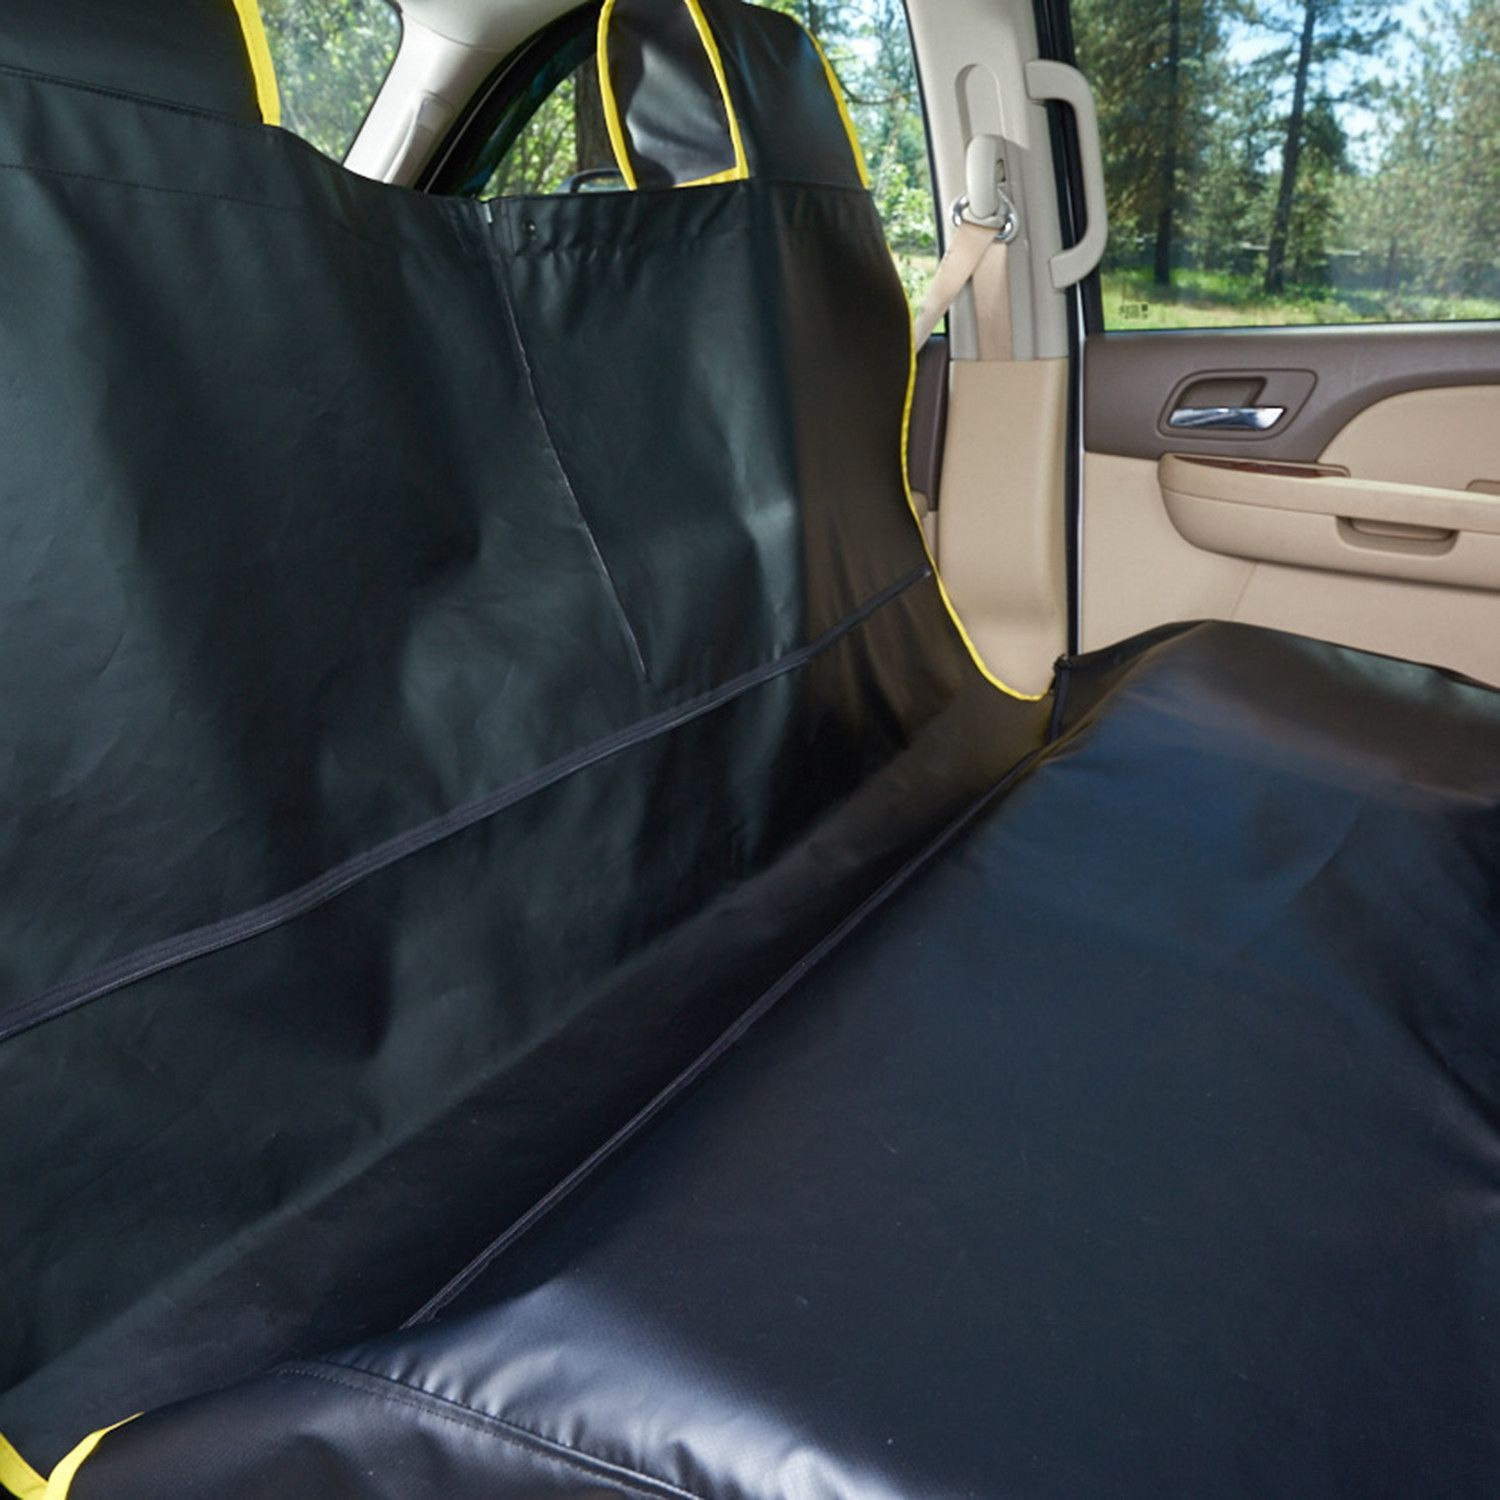 Chevrolet Tahoe Seat Covers Are Necessary For Chevrolet Owners Who